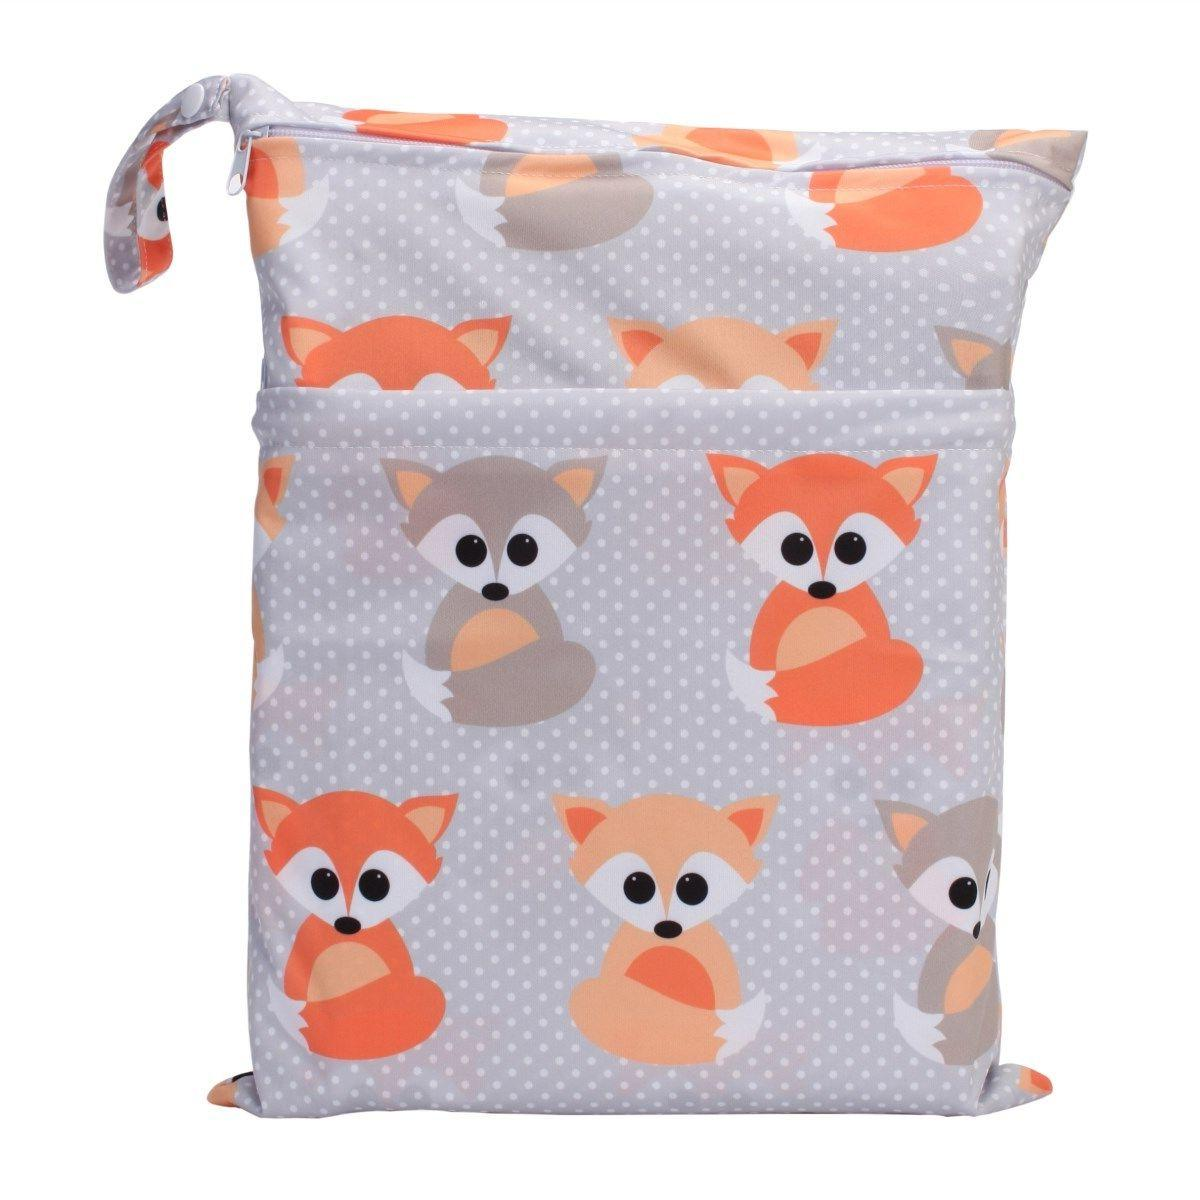 U Pick Bag Baby Cloth Nappy Bag Two Zipper Pockets